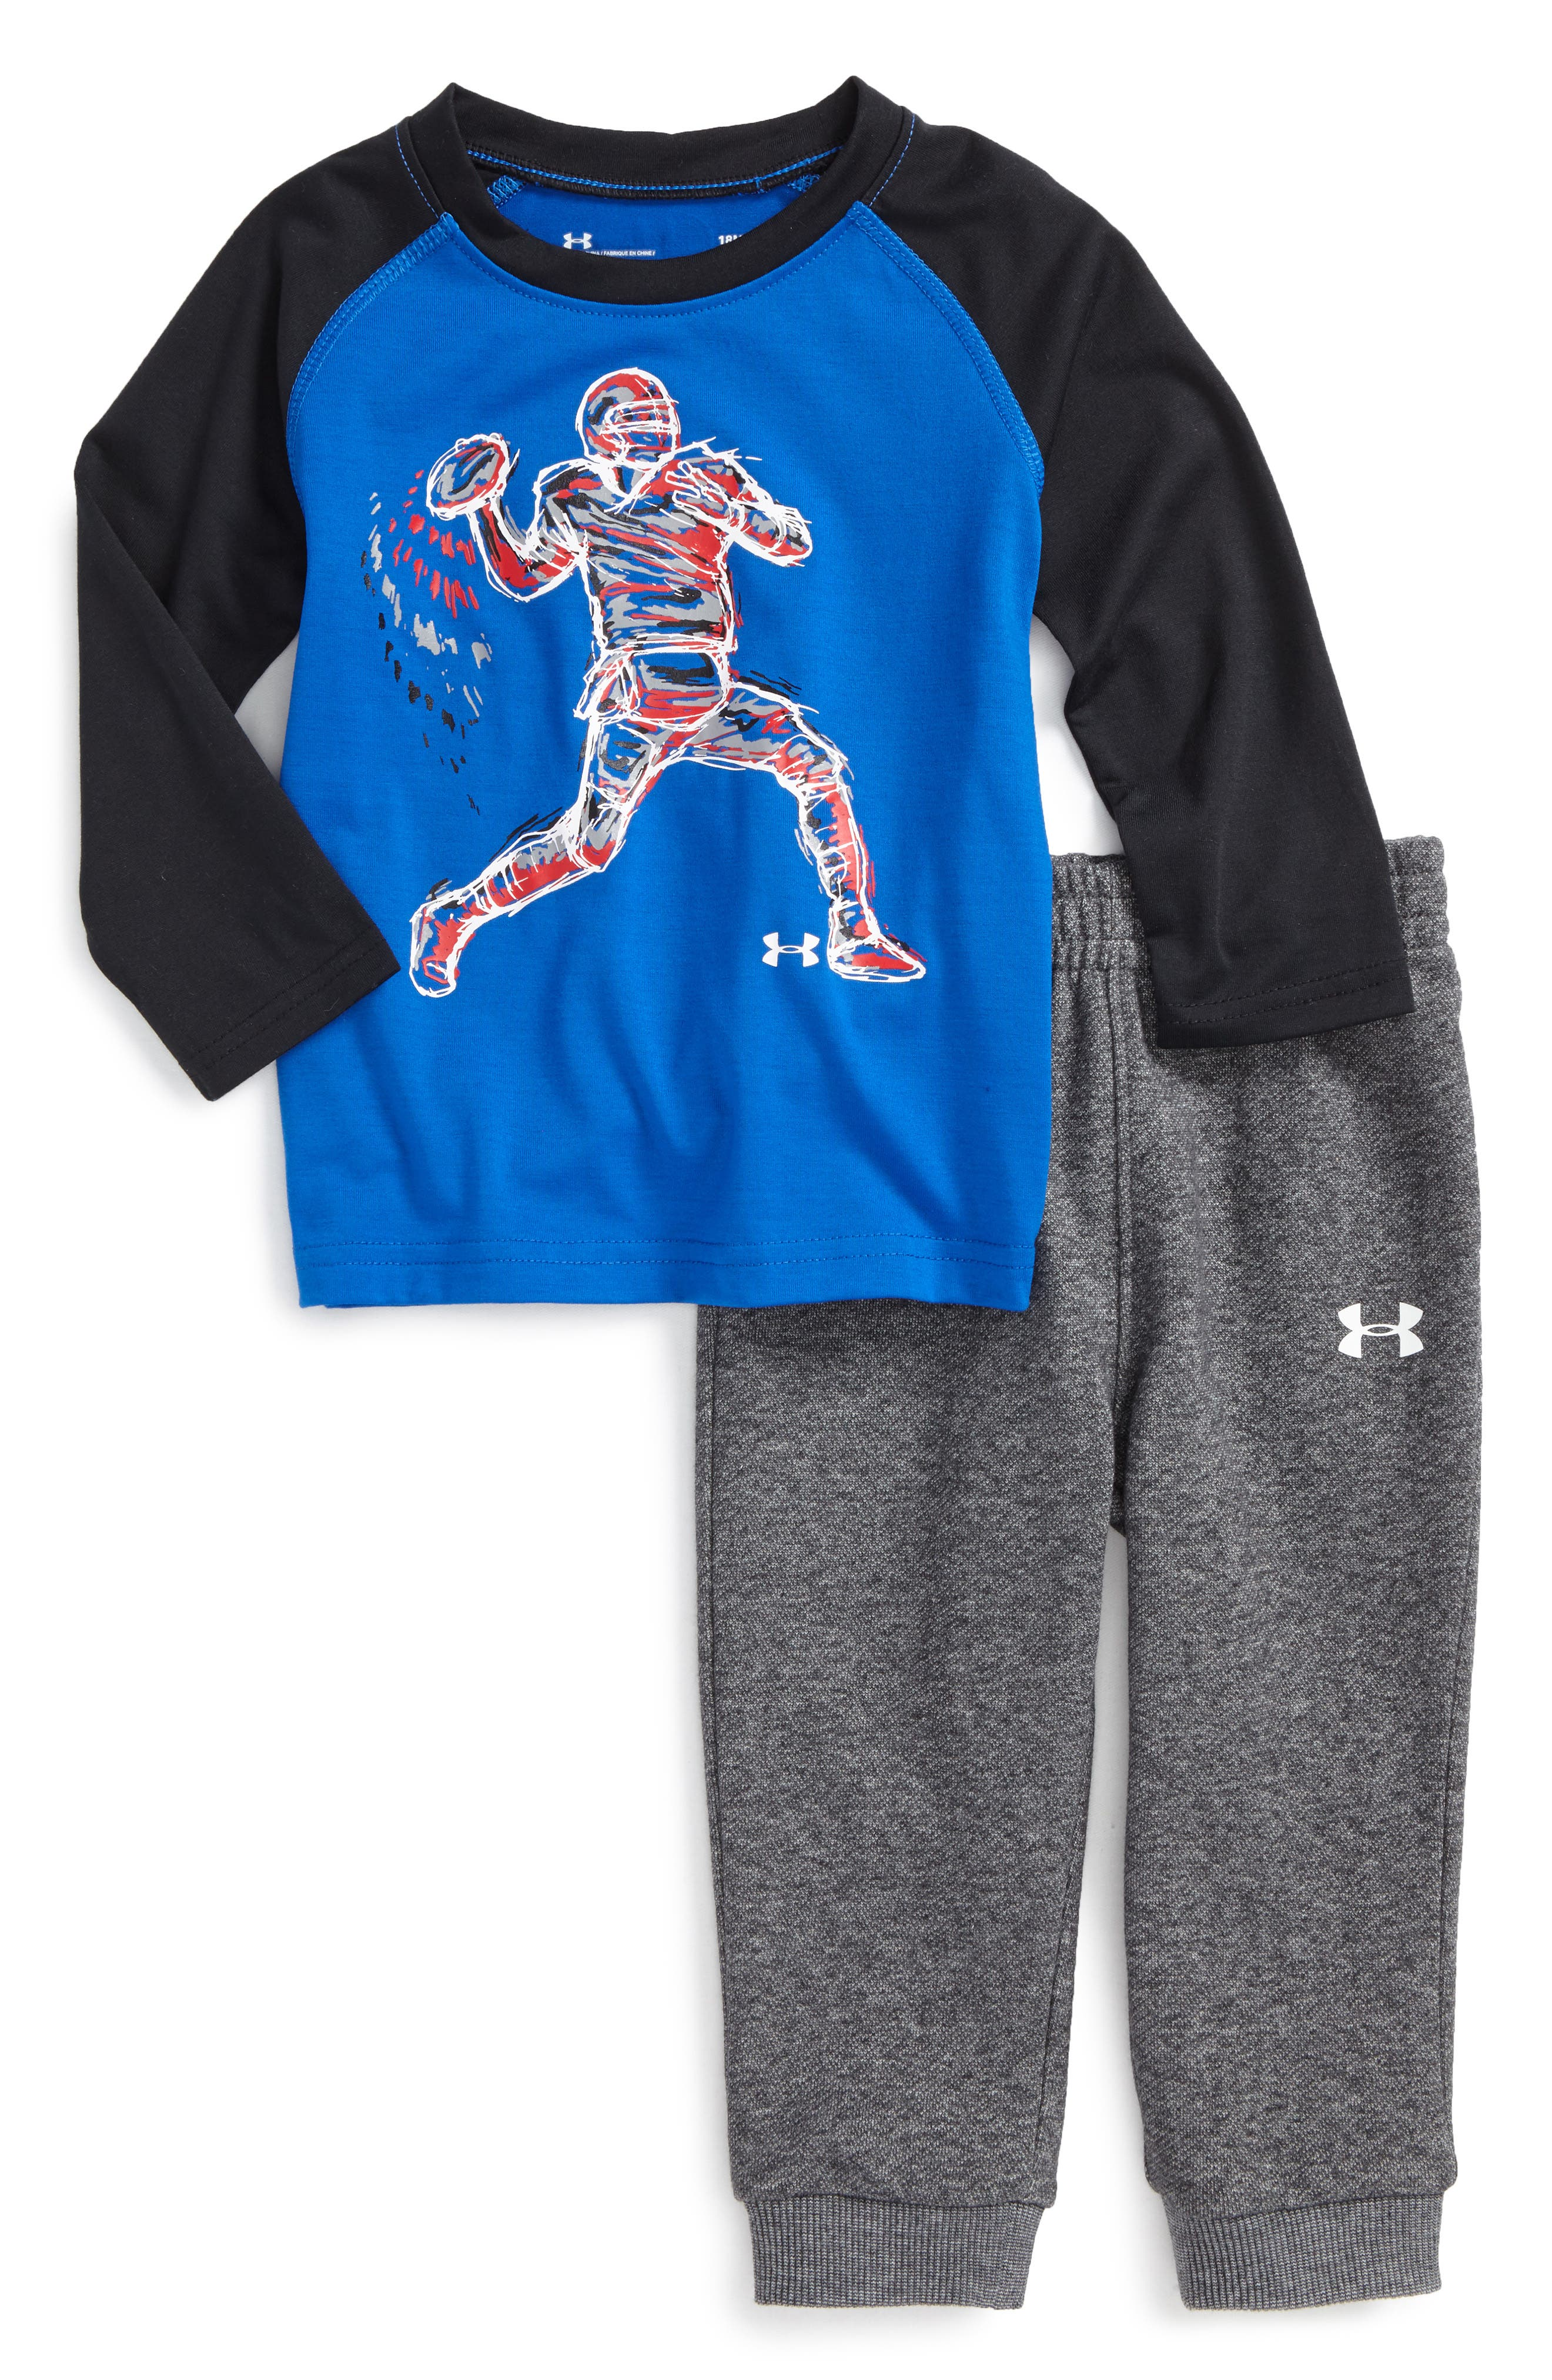 Alternate Image 1 Selected - Under Armour Illuminated QB Raglan T-Shirt & Sweatpants (Baby Boys)